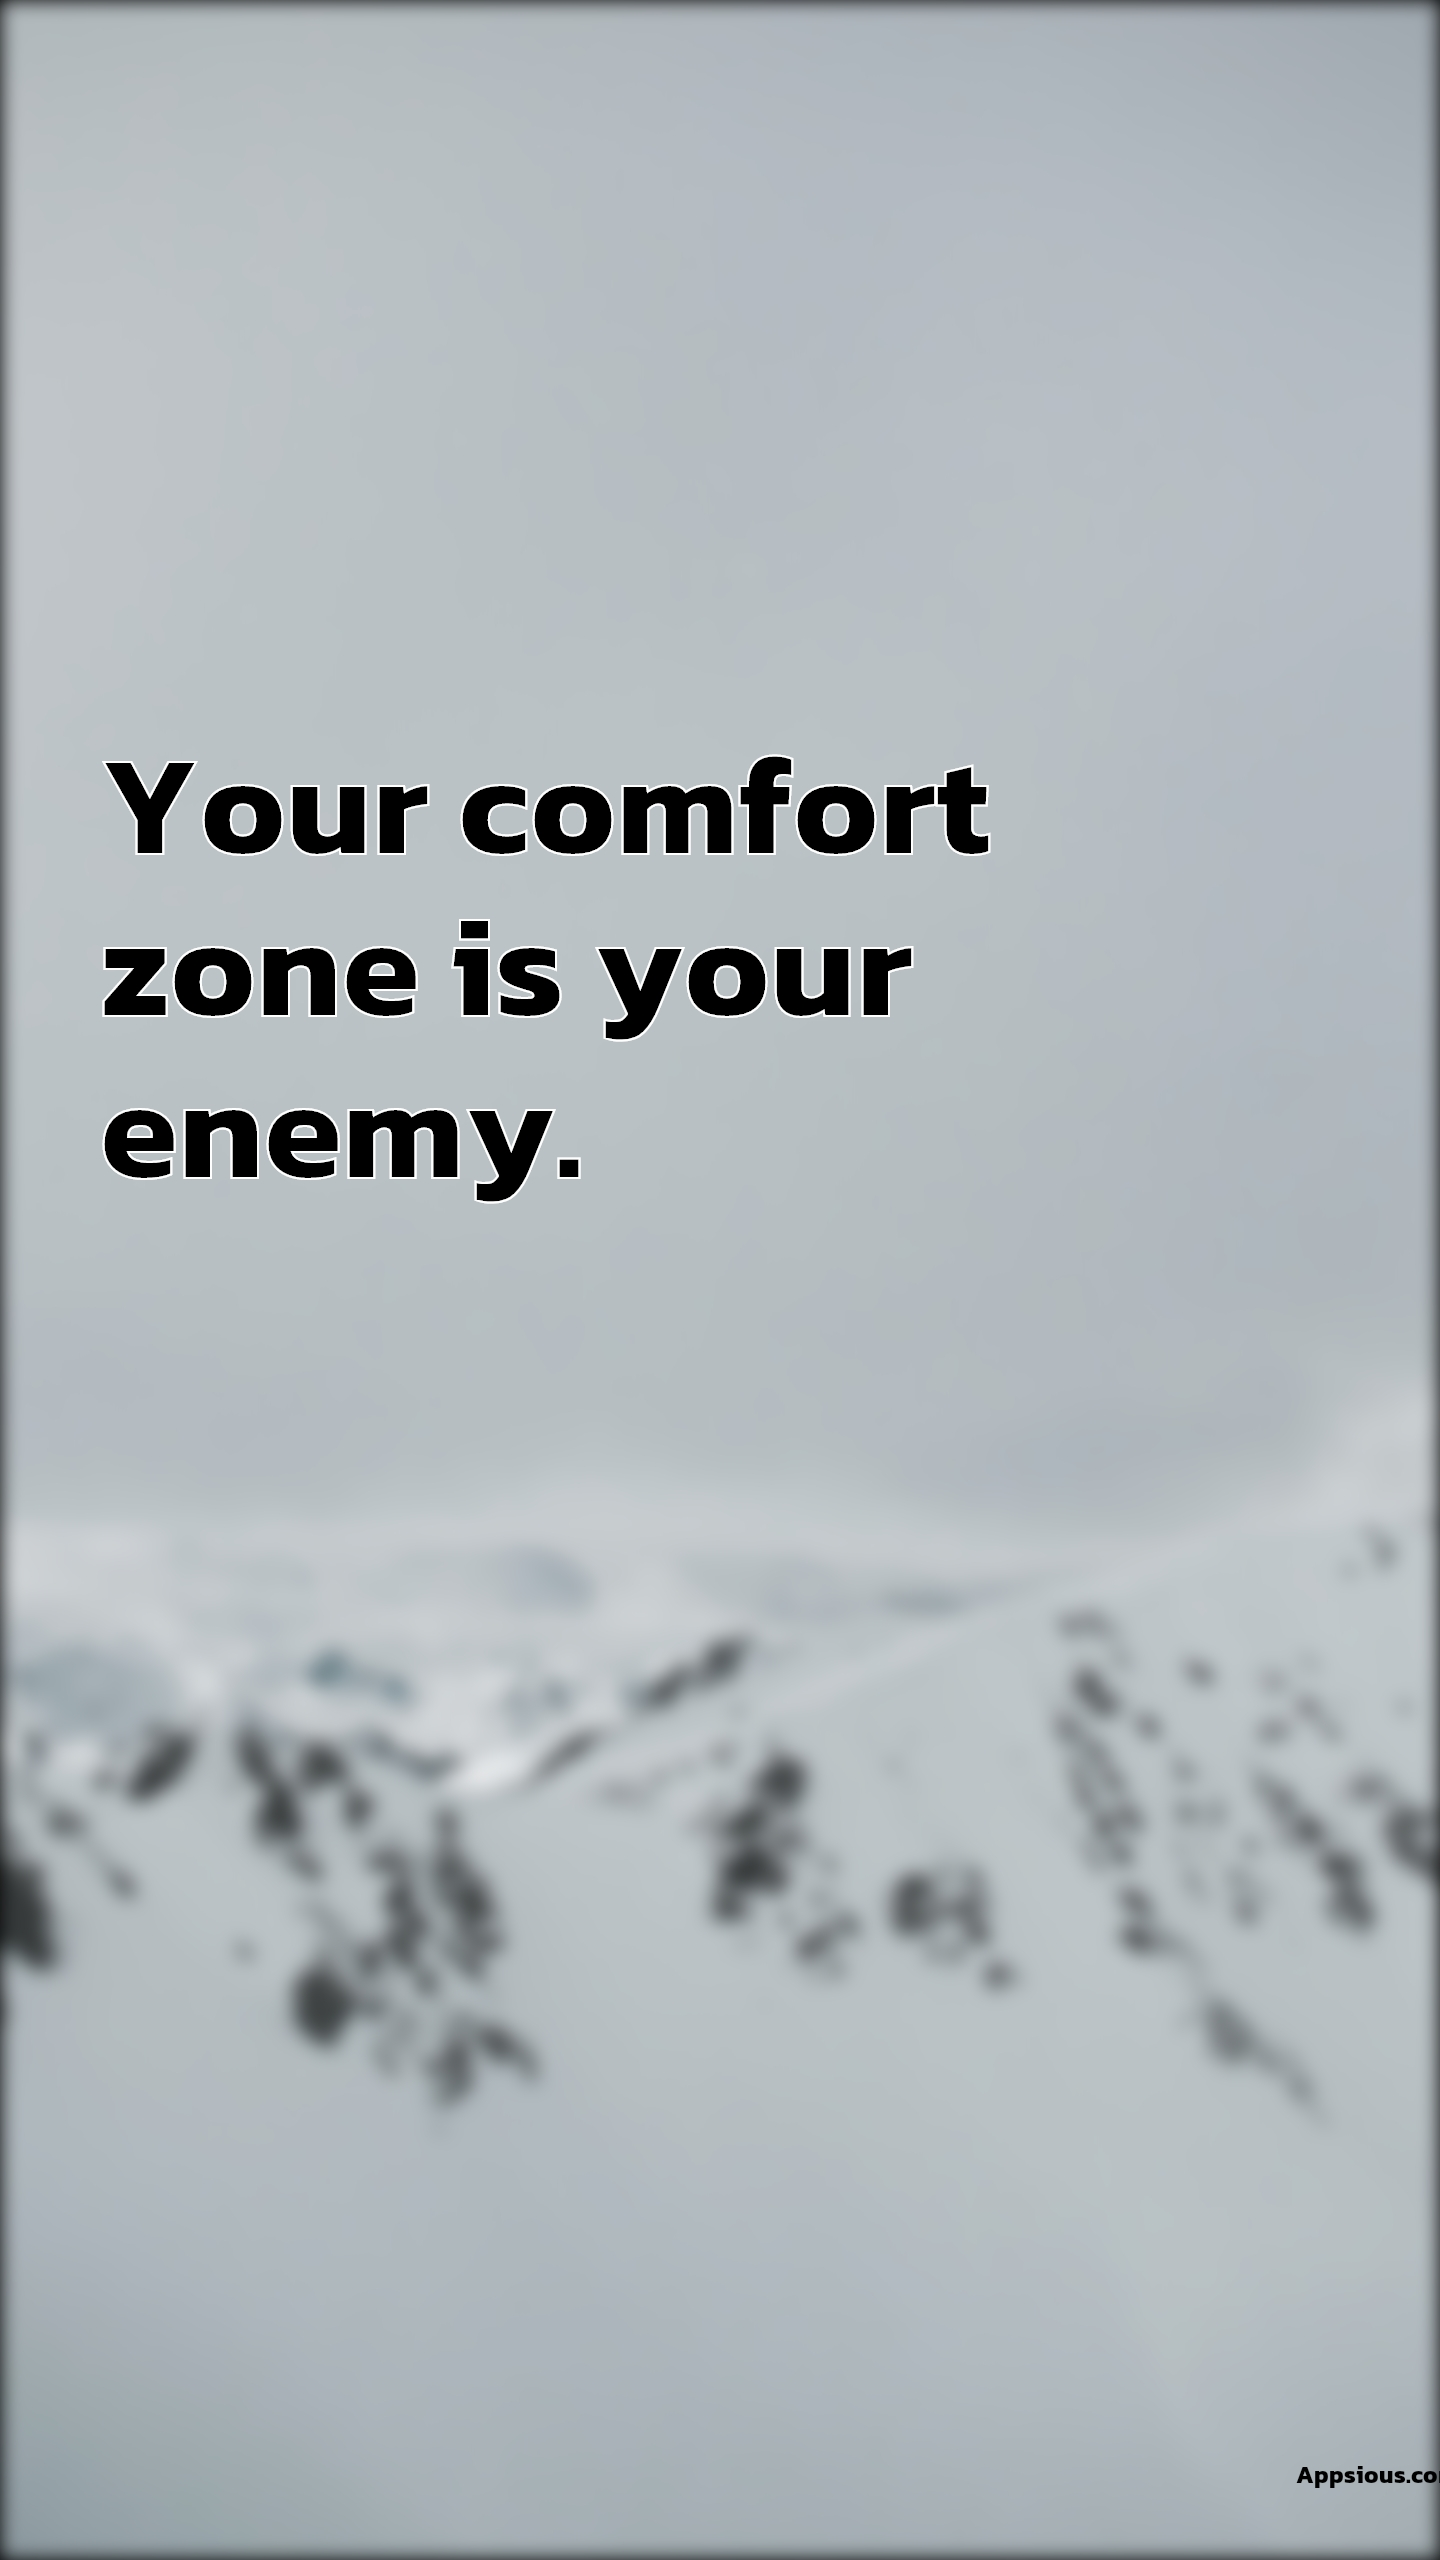 Your comfort zone is your enemy.